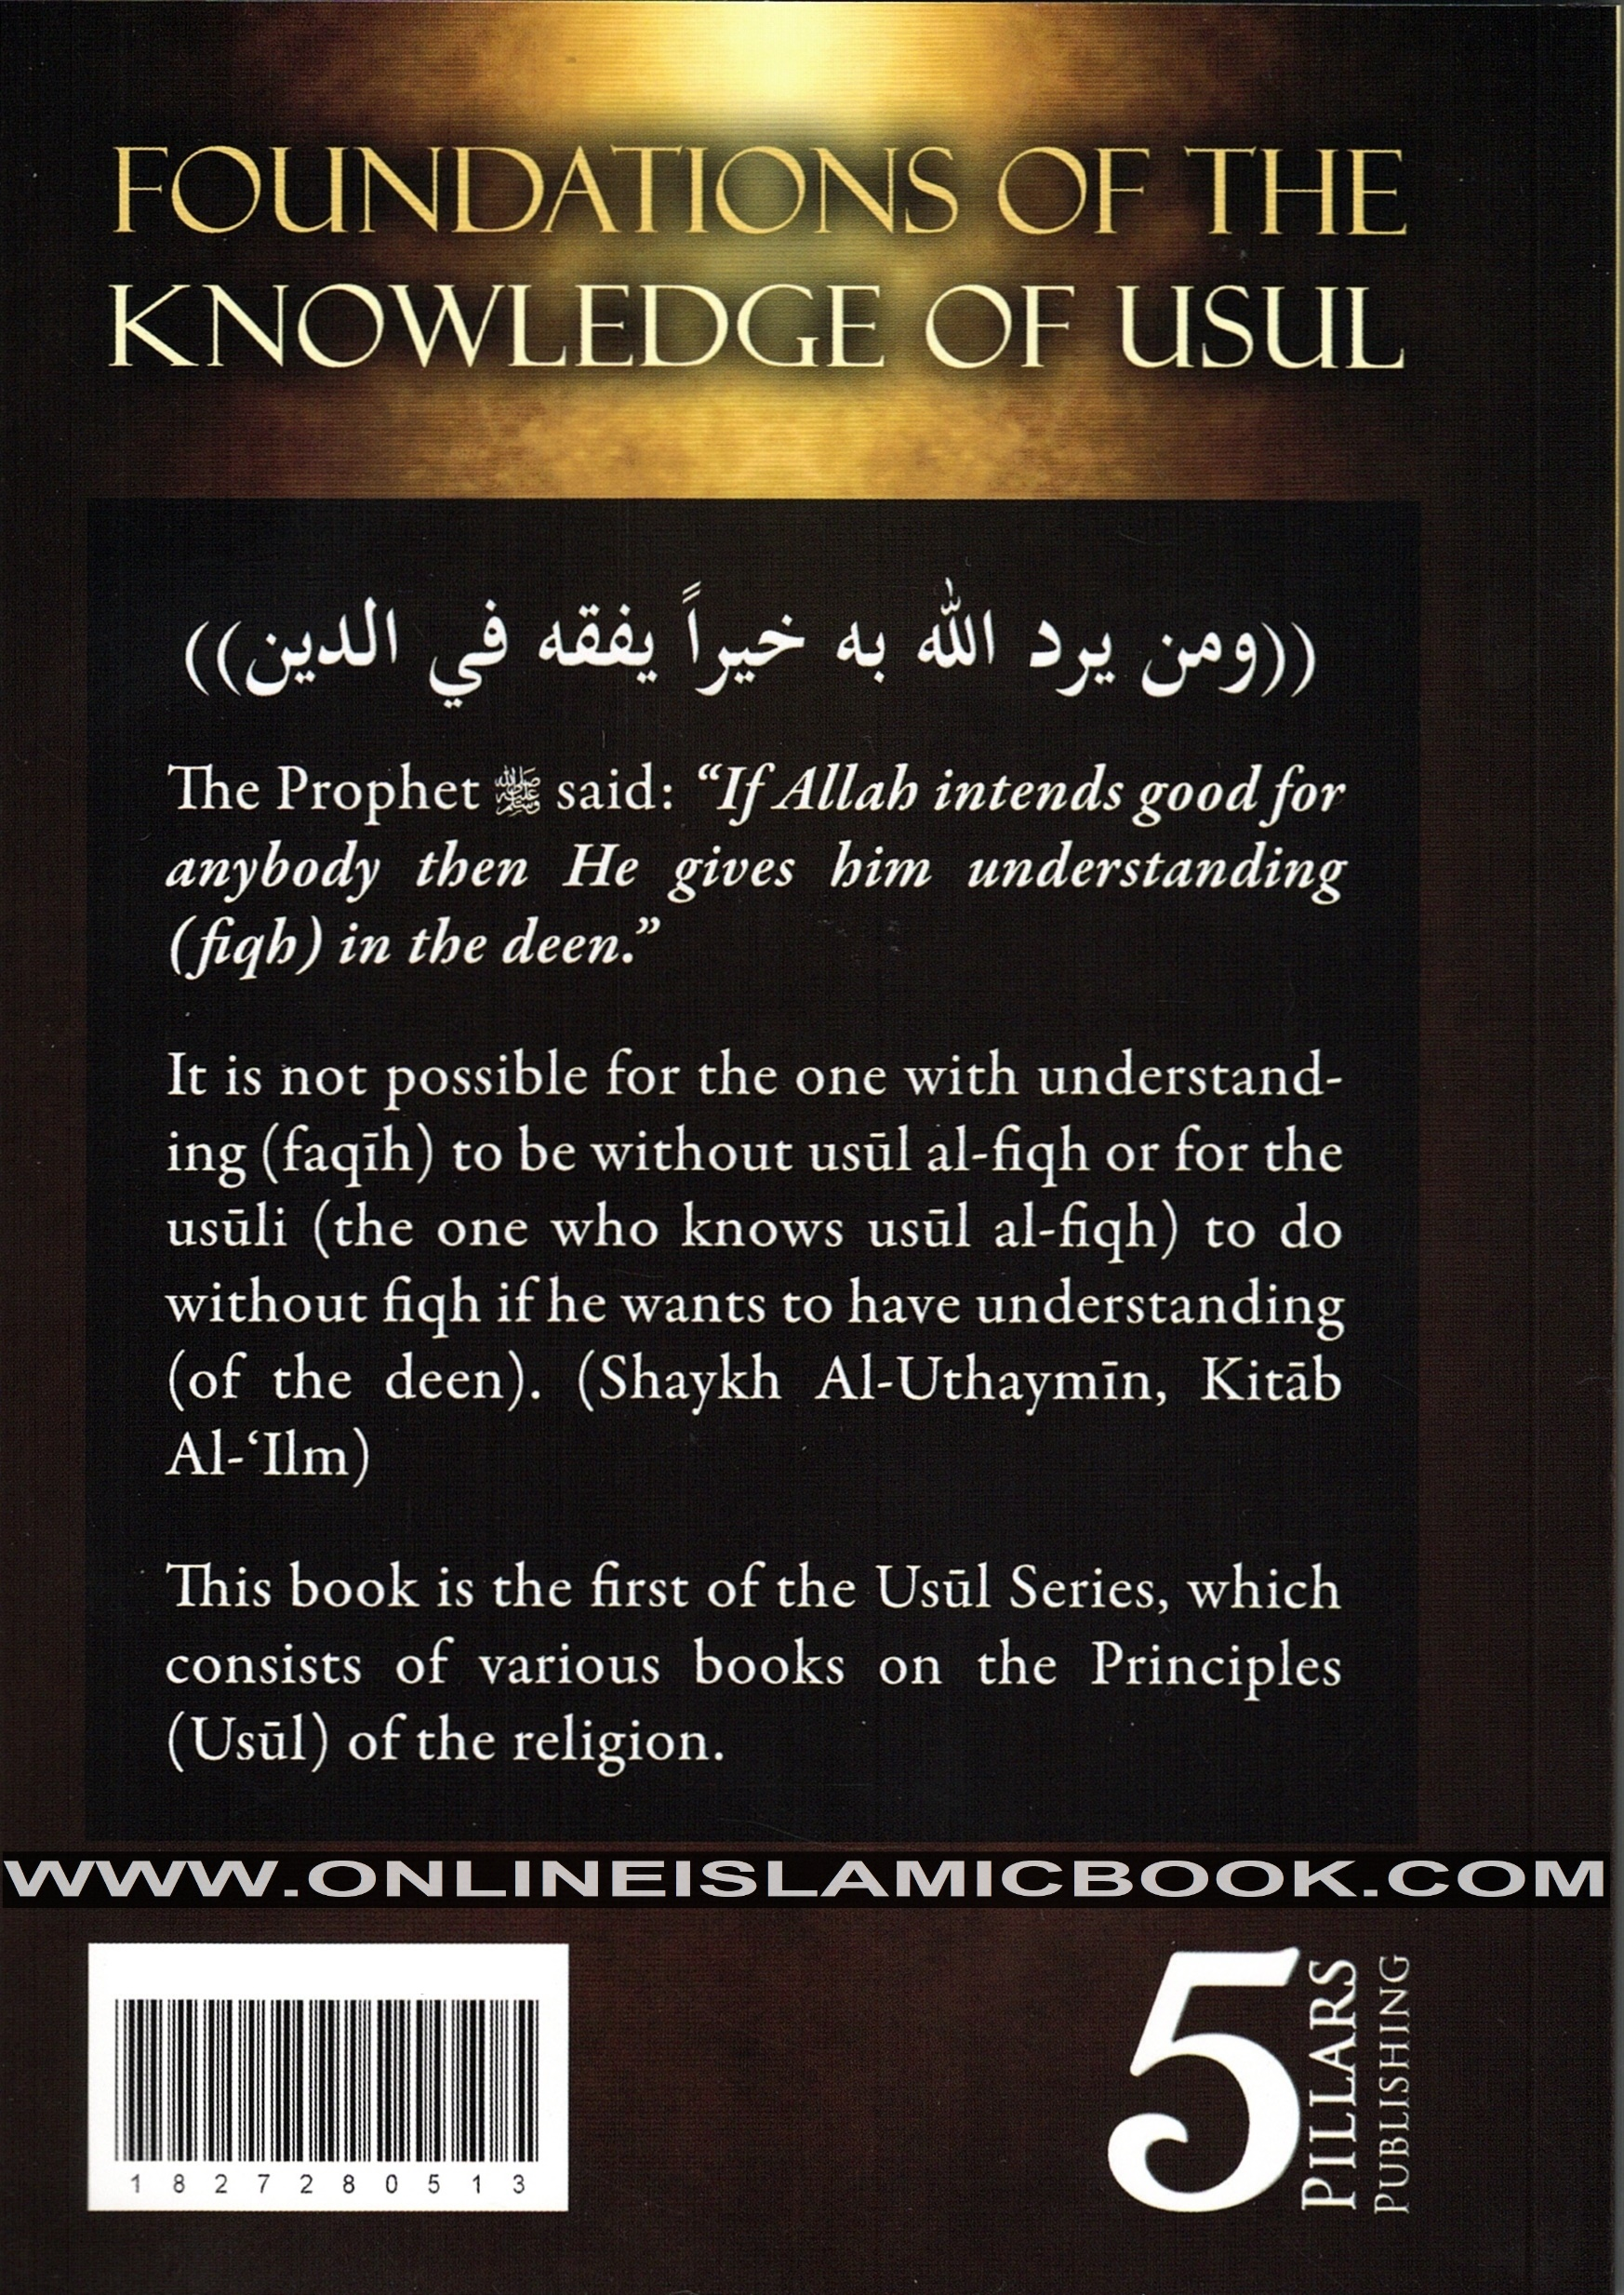 the-foundations-of-the-knowledge-of-usul-2-.jpg